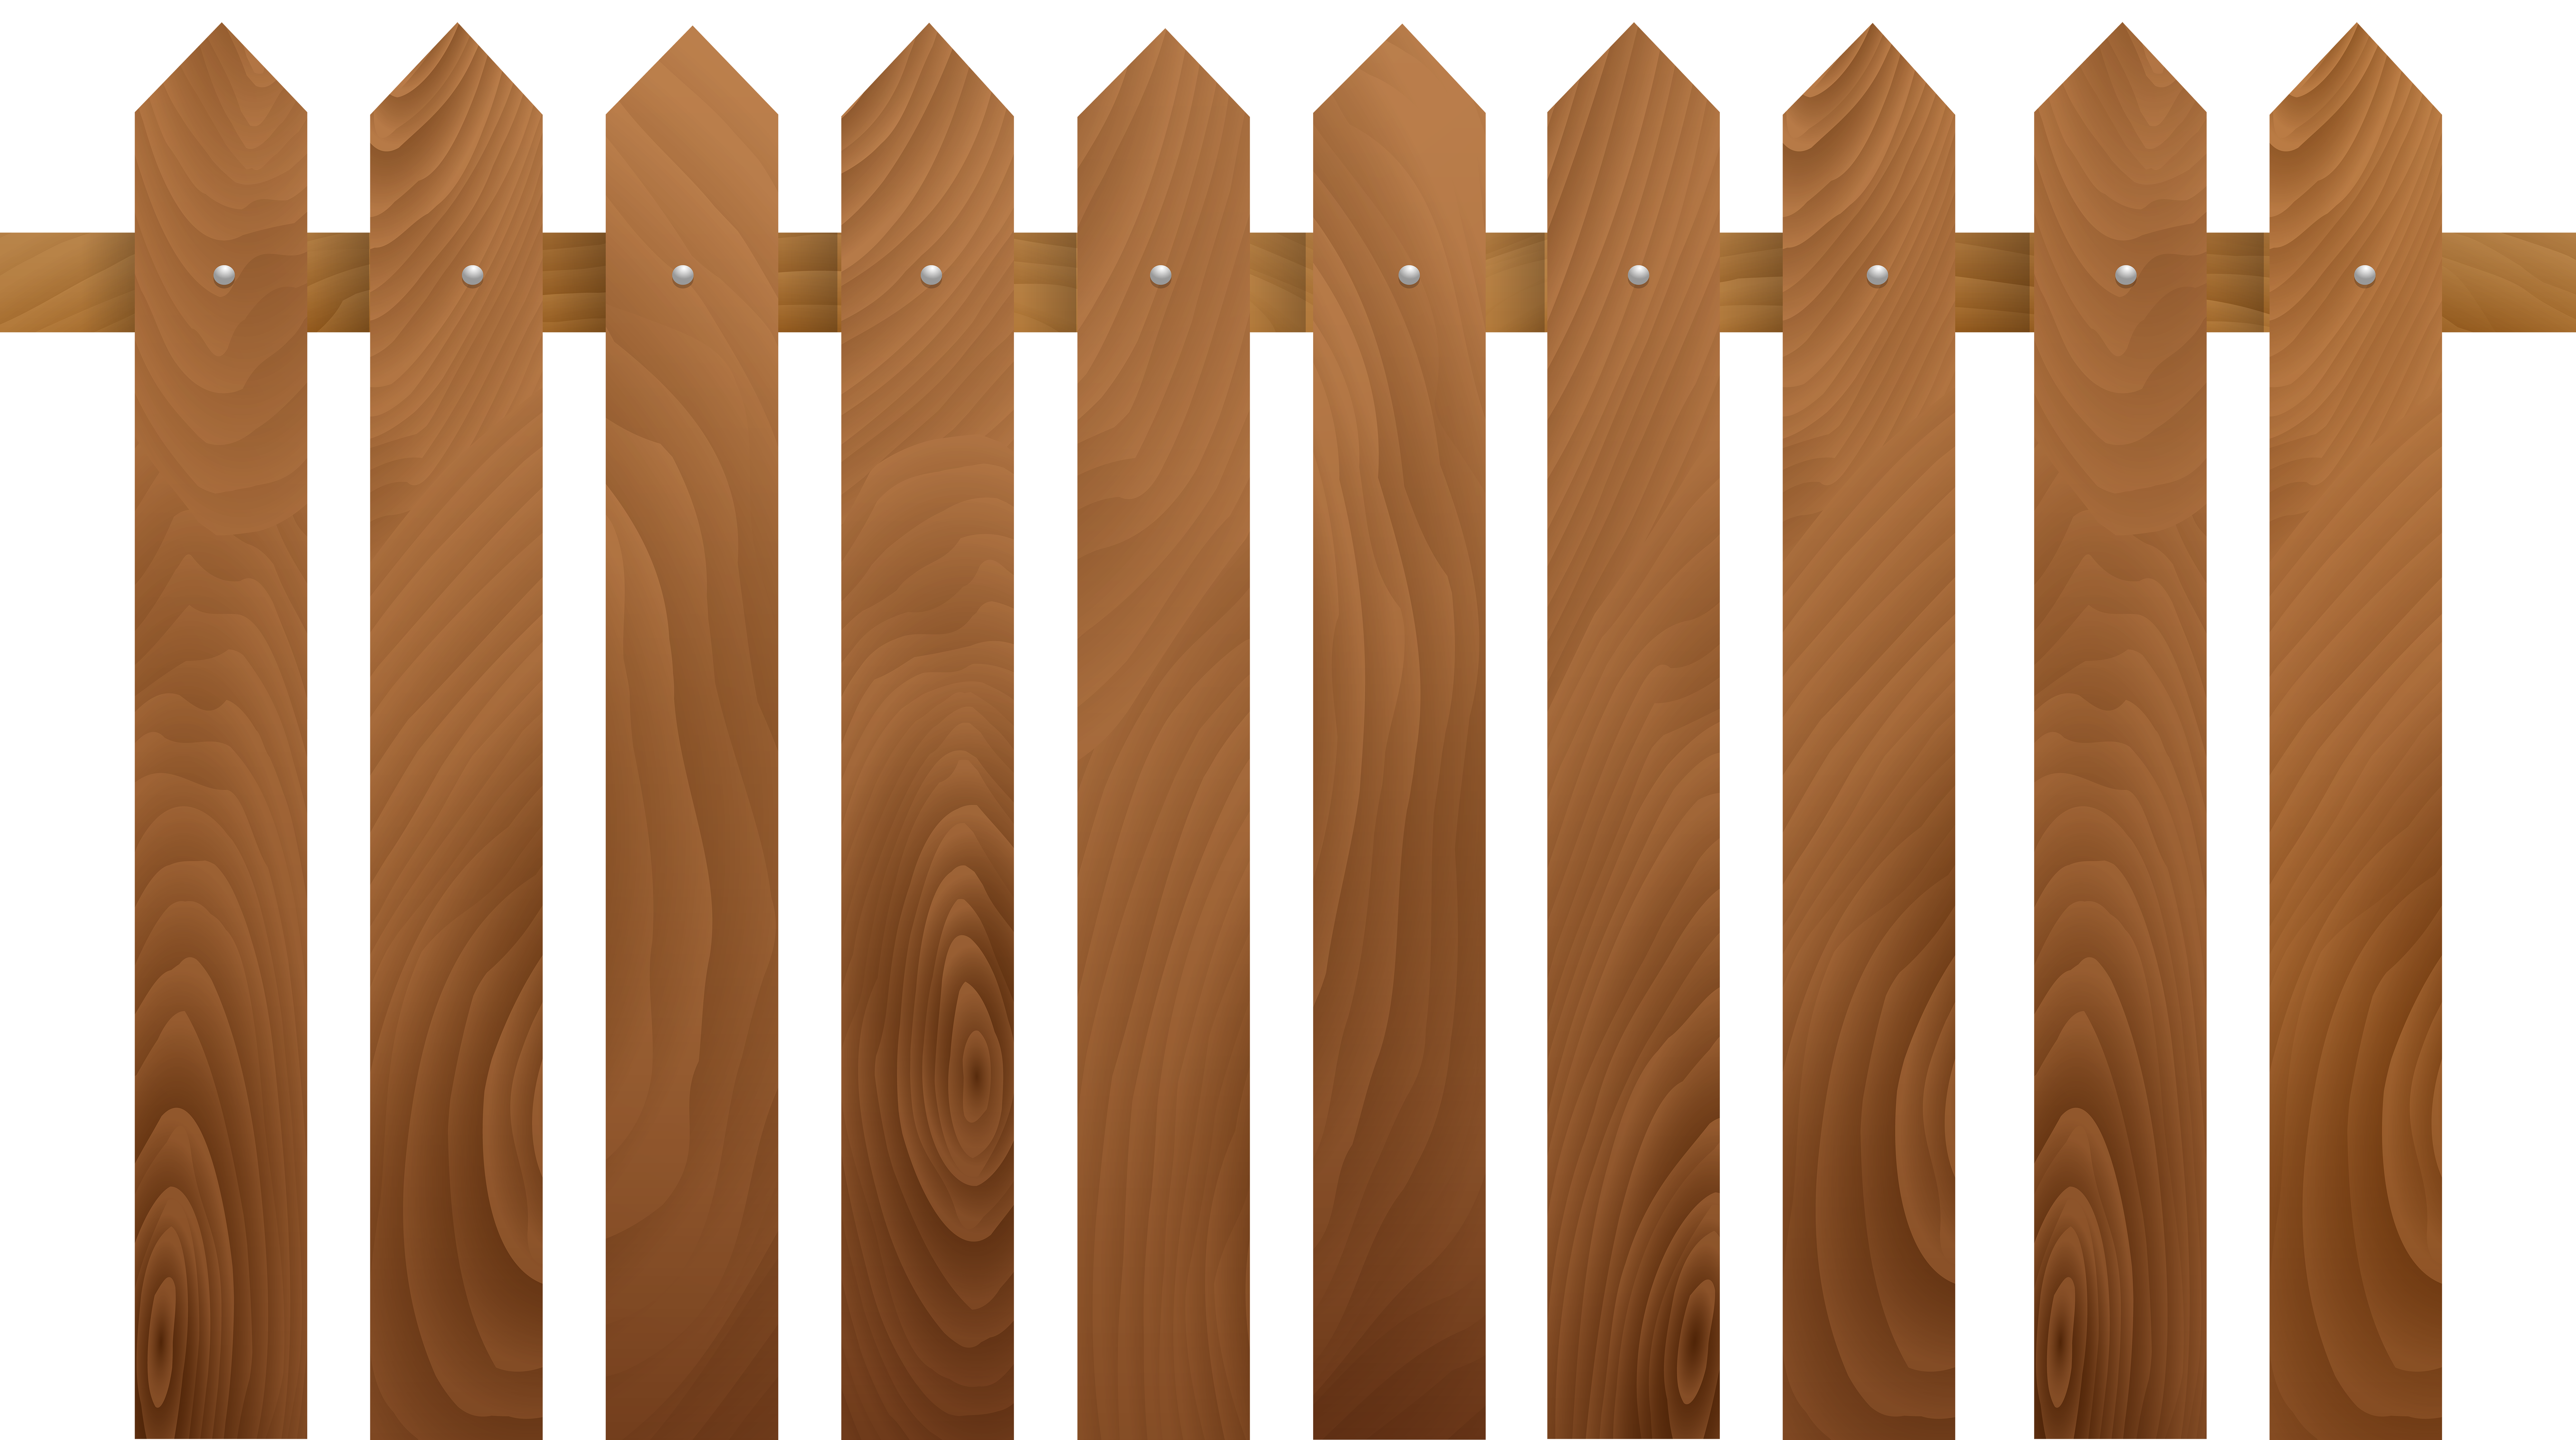 Halloween picket fence clipart clip art download Wooden Fence Transparent Clip Art PNG Image | Gallery Yopriceville ... clip art download